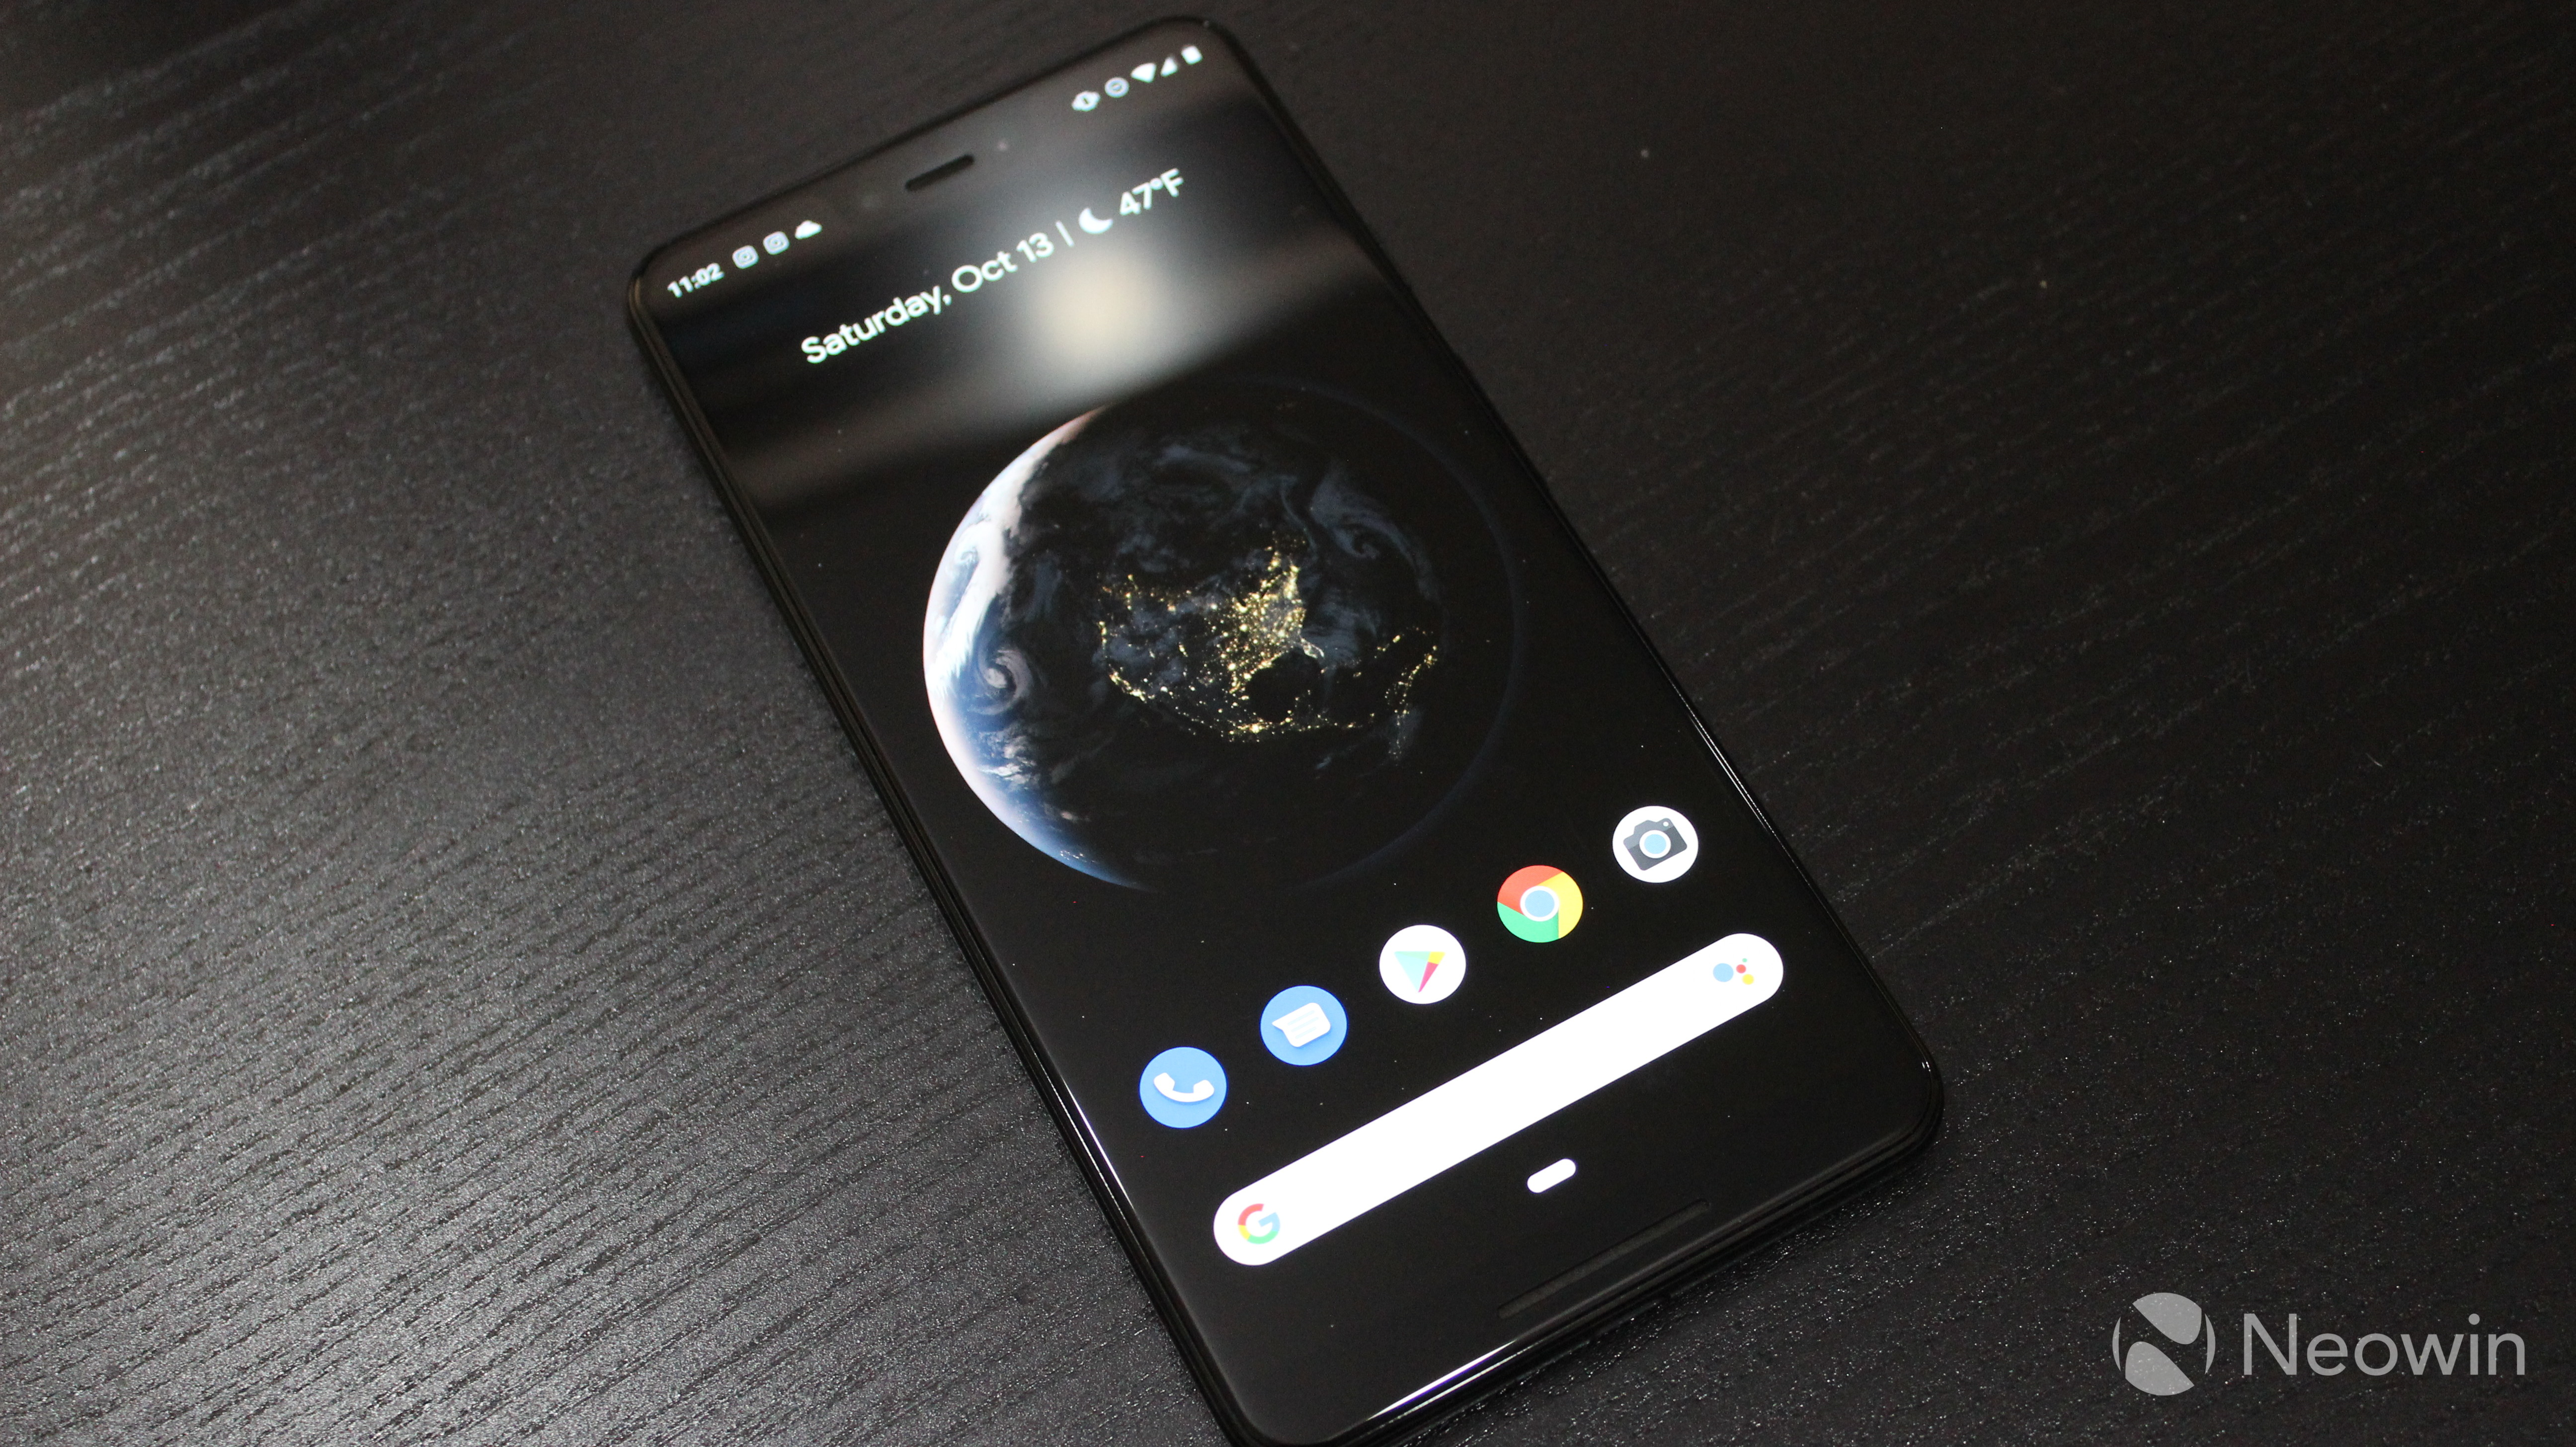 Weekend Deals: Up to $300 off Google Pixel 3, Dell PowerEdge